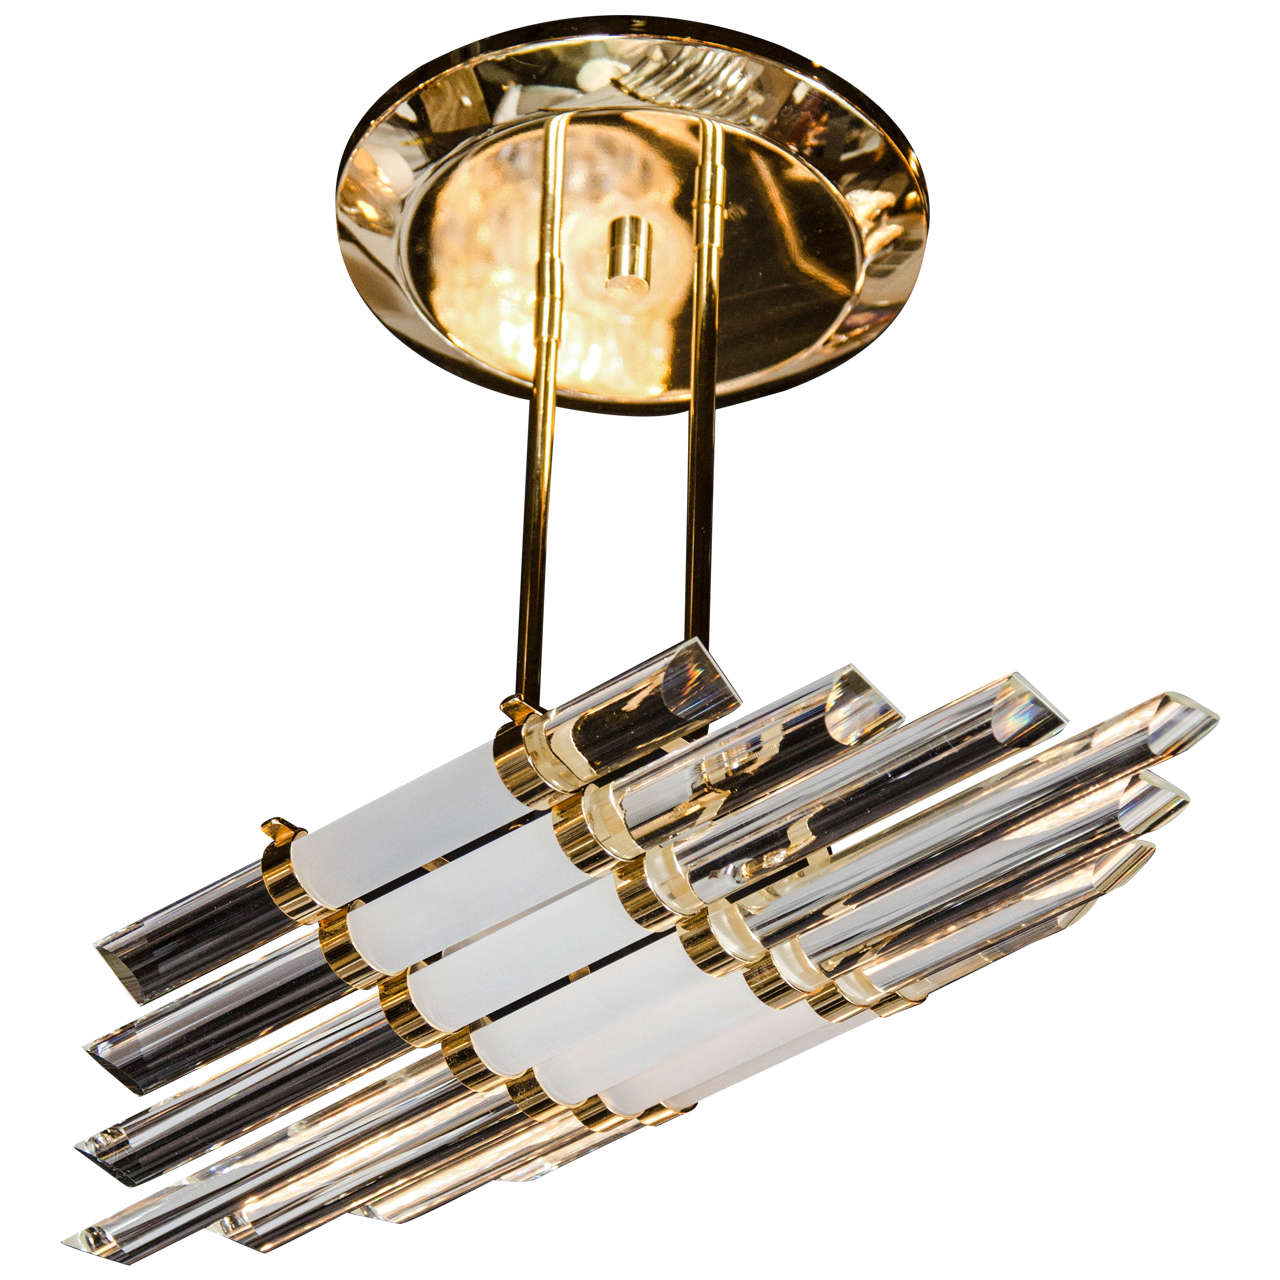 Mid-Century Modernist Skyscraper Style Glass Rod Chandelier with Brass Fittings